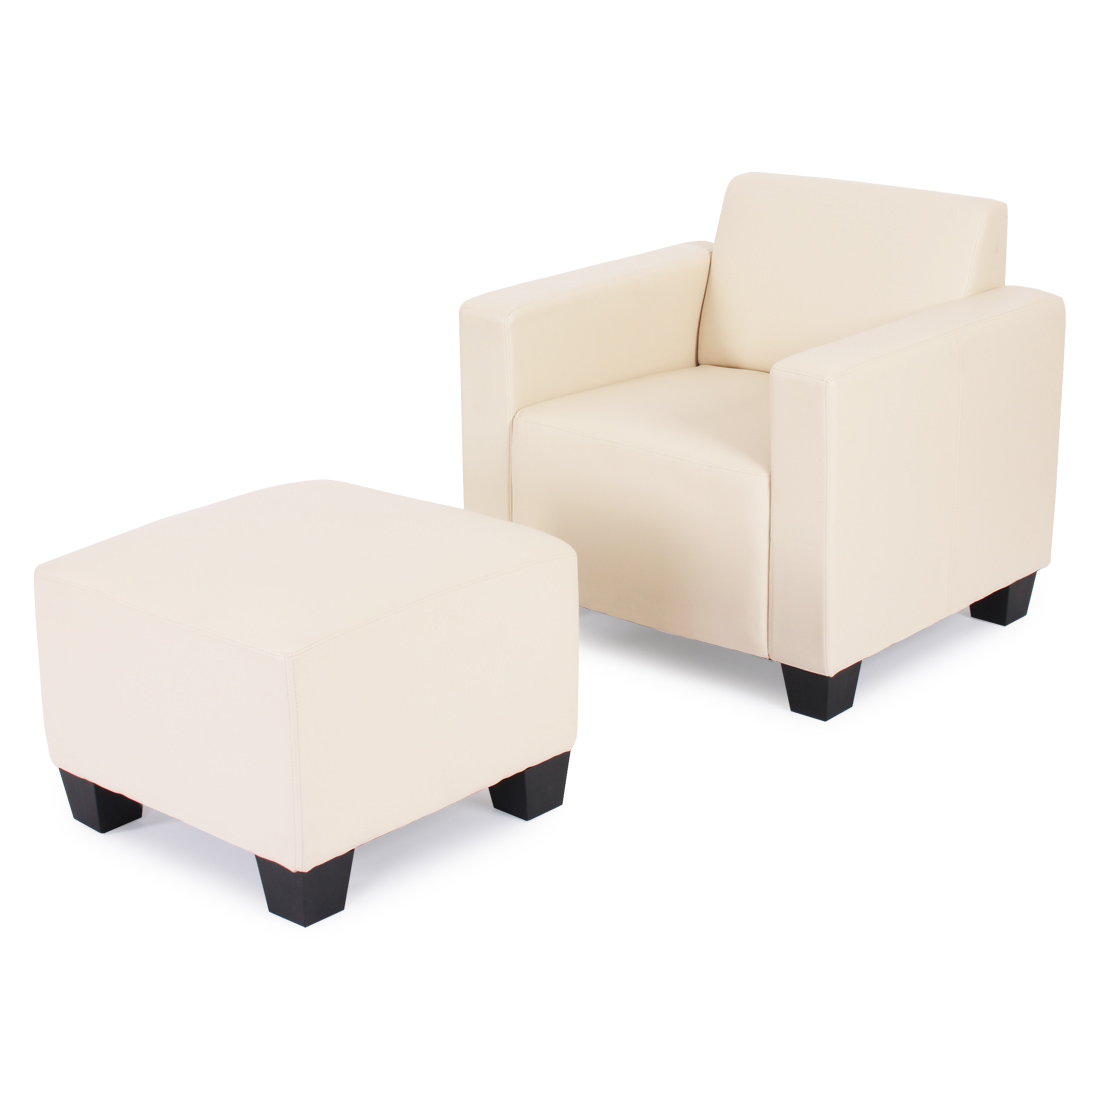 modular sessel loungesessel mit ottomane lyon kunstleder creme. Black Bedroom Furniture Sets. Home Design Ideas